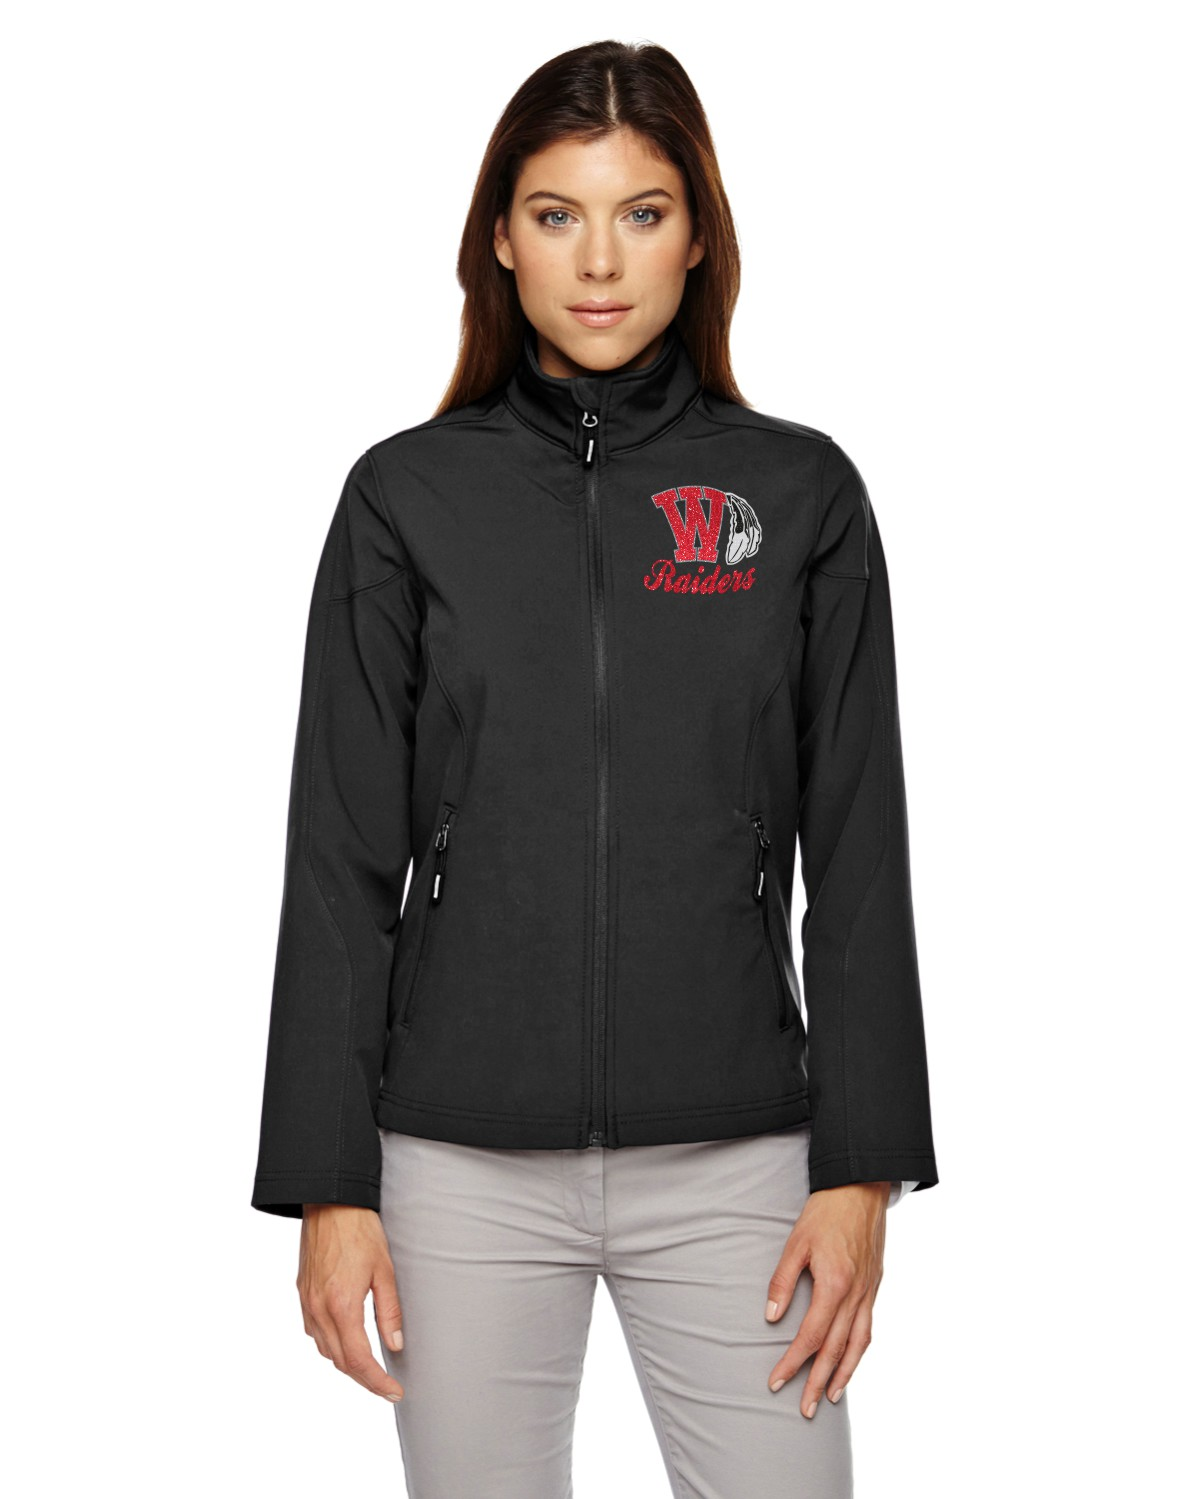 Ladies Soft Shell Raiders Jacket